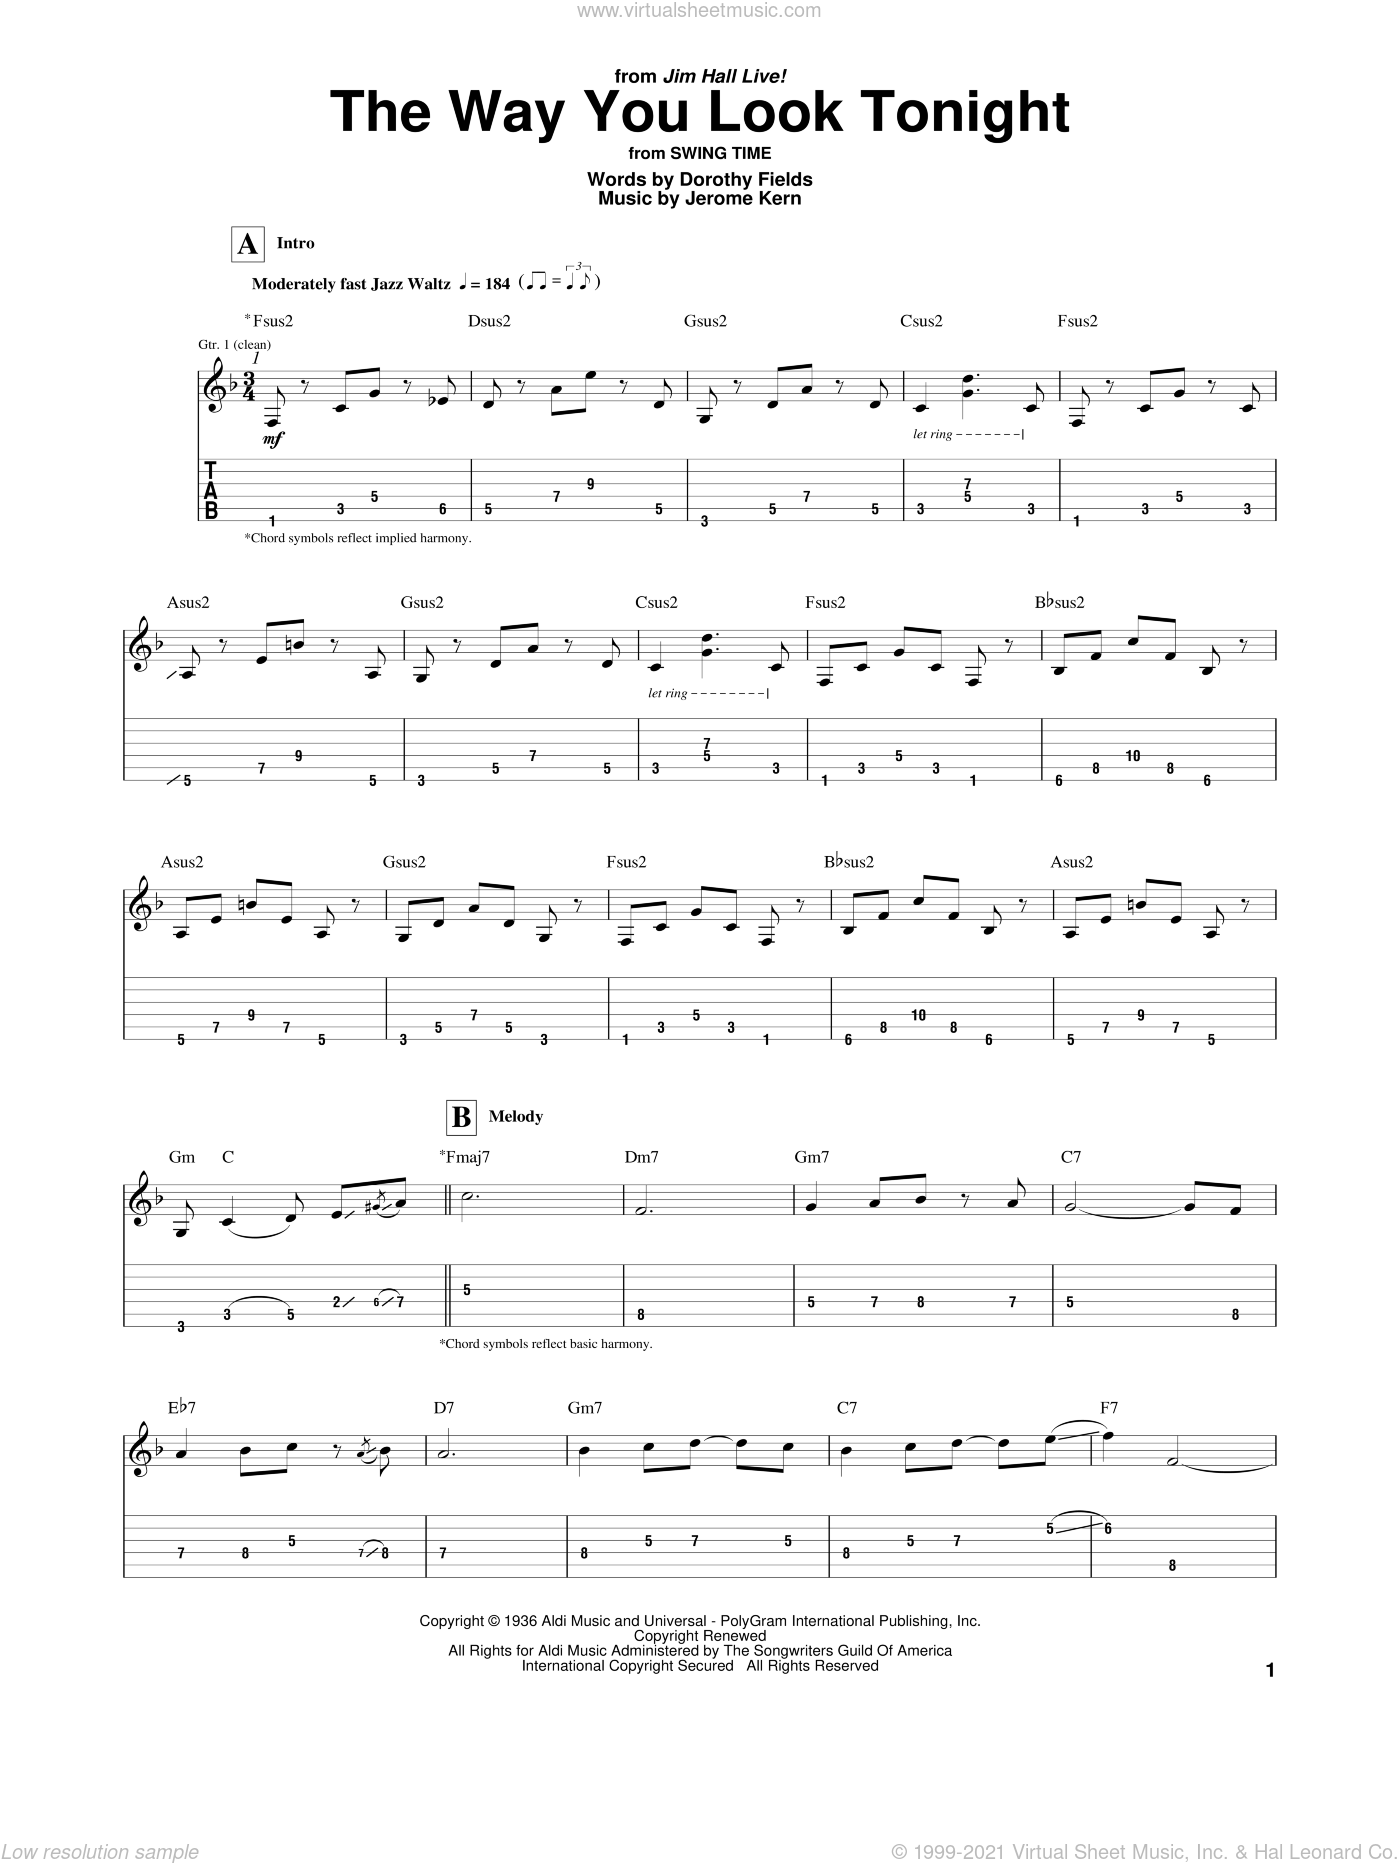 The Way You Look Tonight sheet music for guitar (tablature) by Dorothy Fields, Jim Hall and Jerome Kern. Score Image Preview.